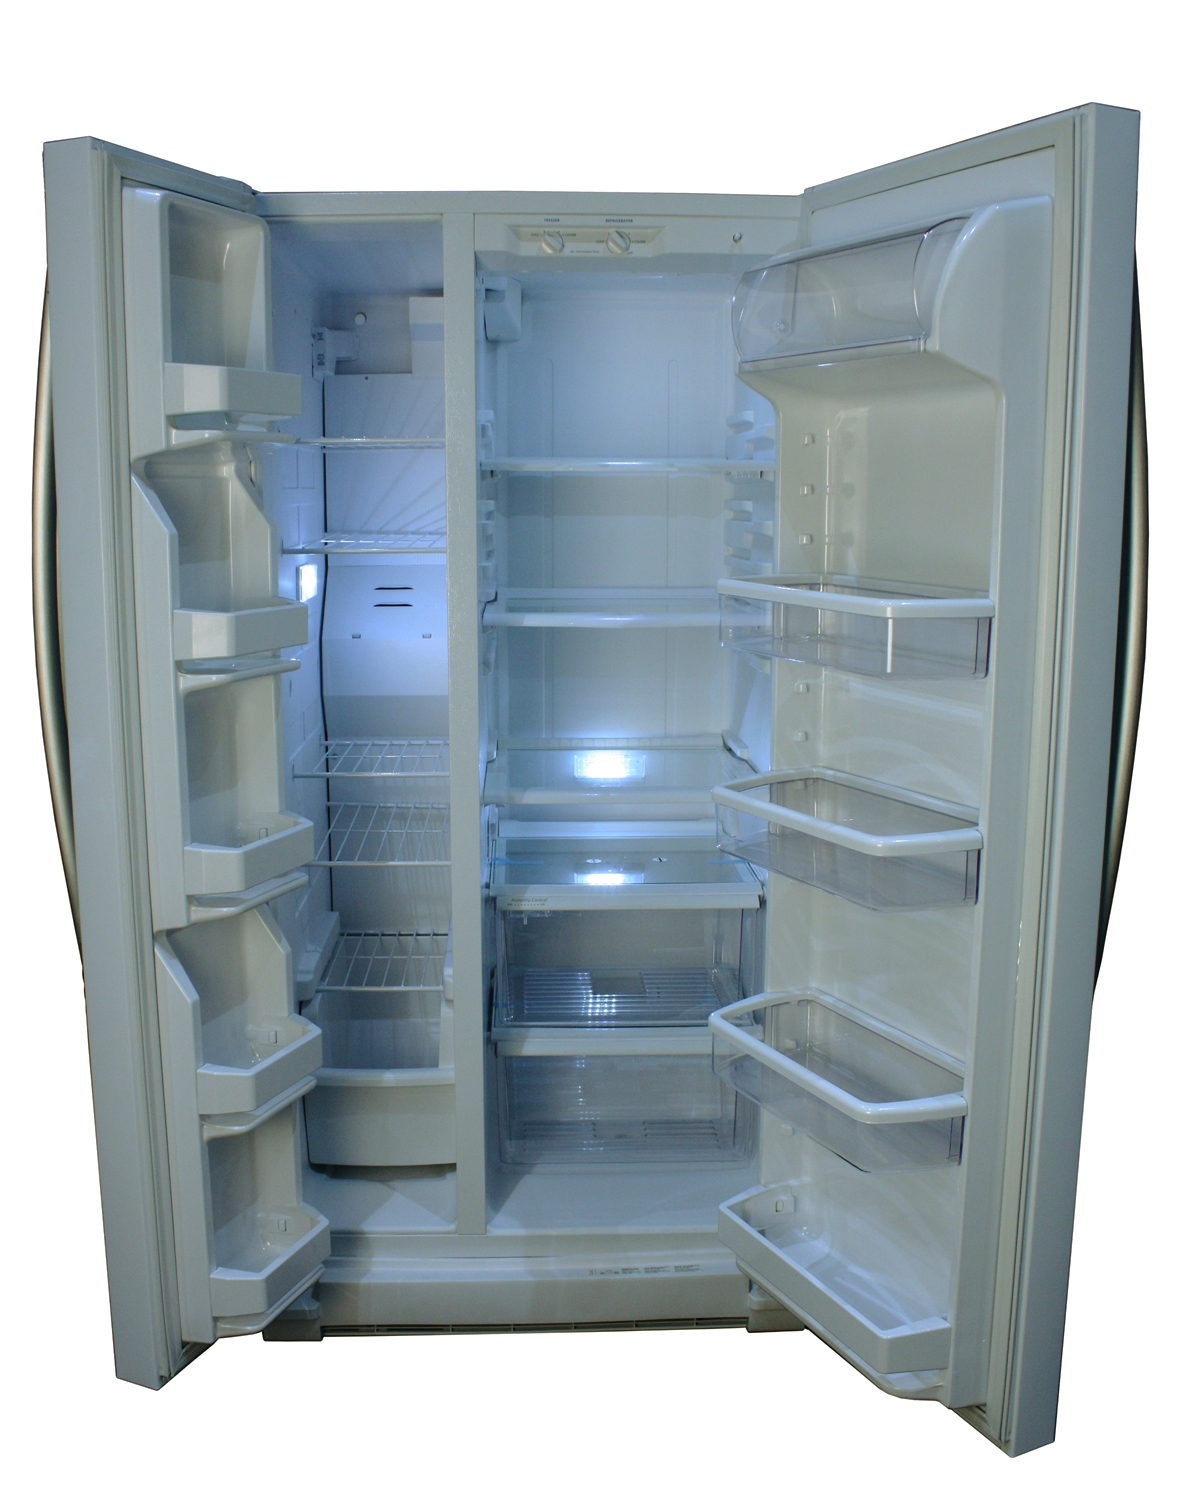 Side by side refrigerator 30 inch width -  Side By Side Refrigerators Main Image Interior